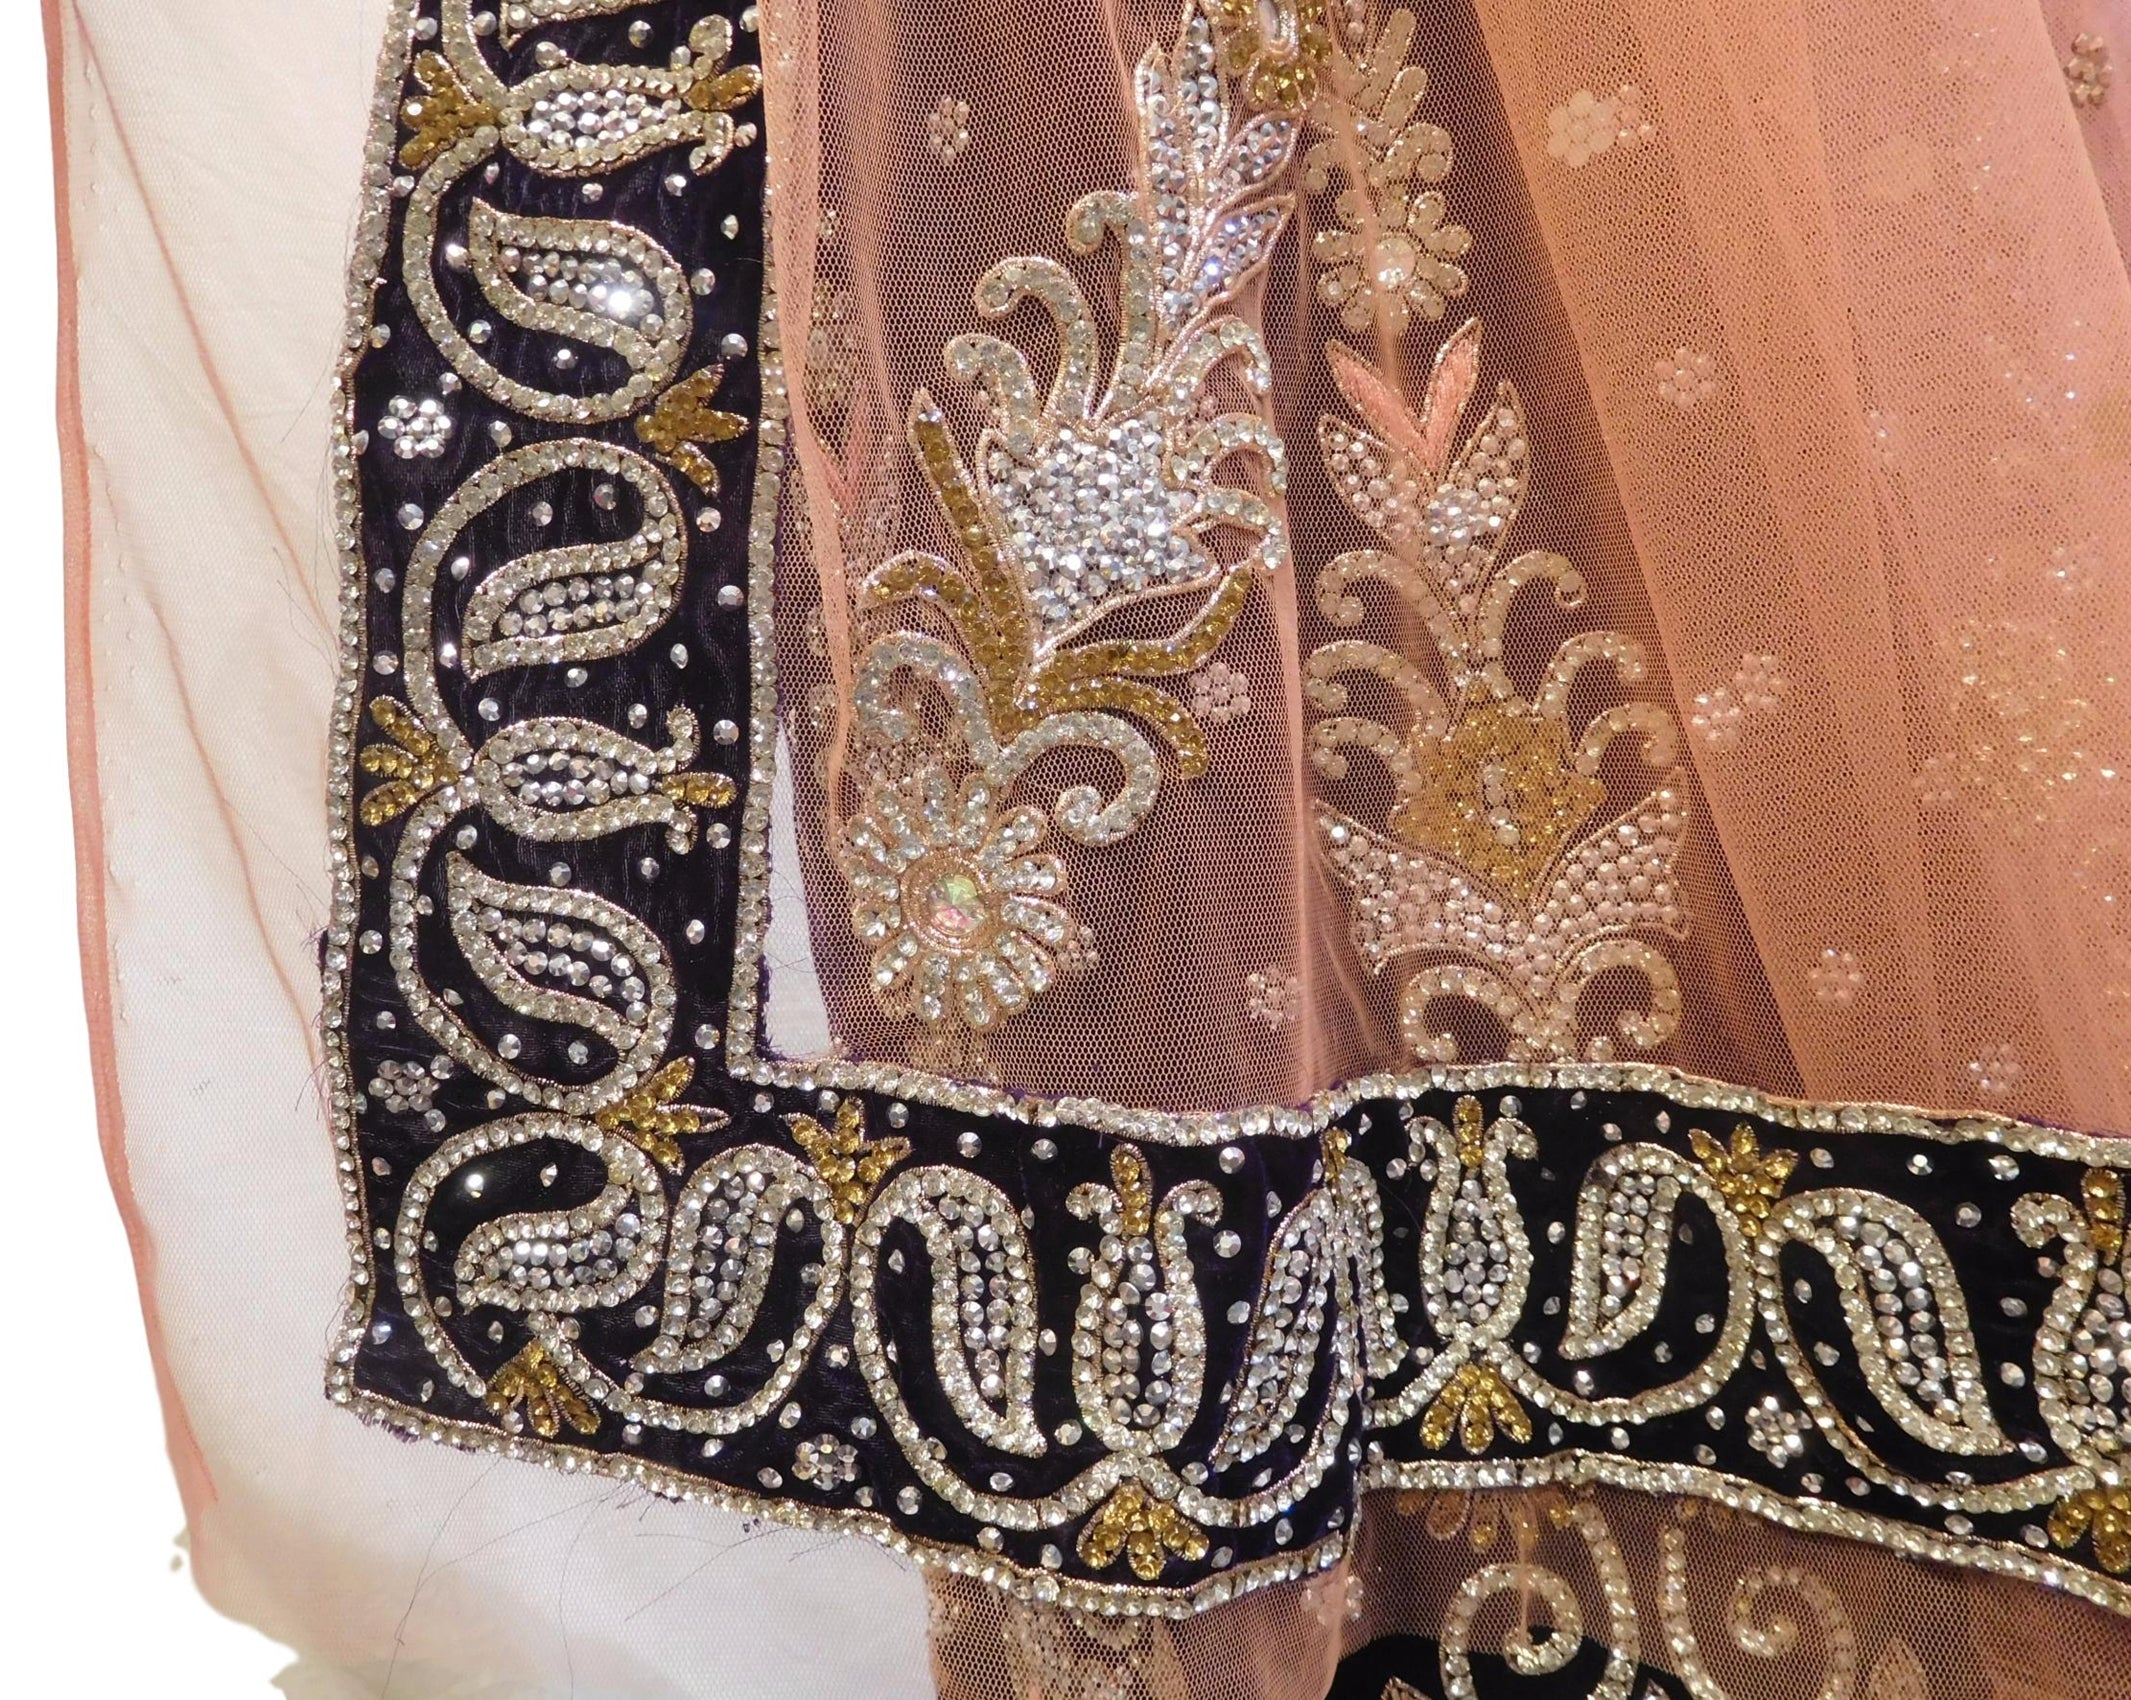 The Show Stopper Peach & Purple Designer Bridal Hand Embroidery Thread Bullion Pearl Zari Cutdana Work Wedding Velvet Lahenga With Net Dupatta & Plain (No Embroidery) Velvet Blouse